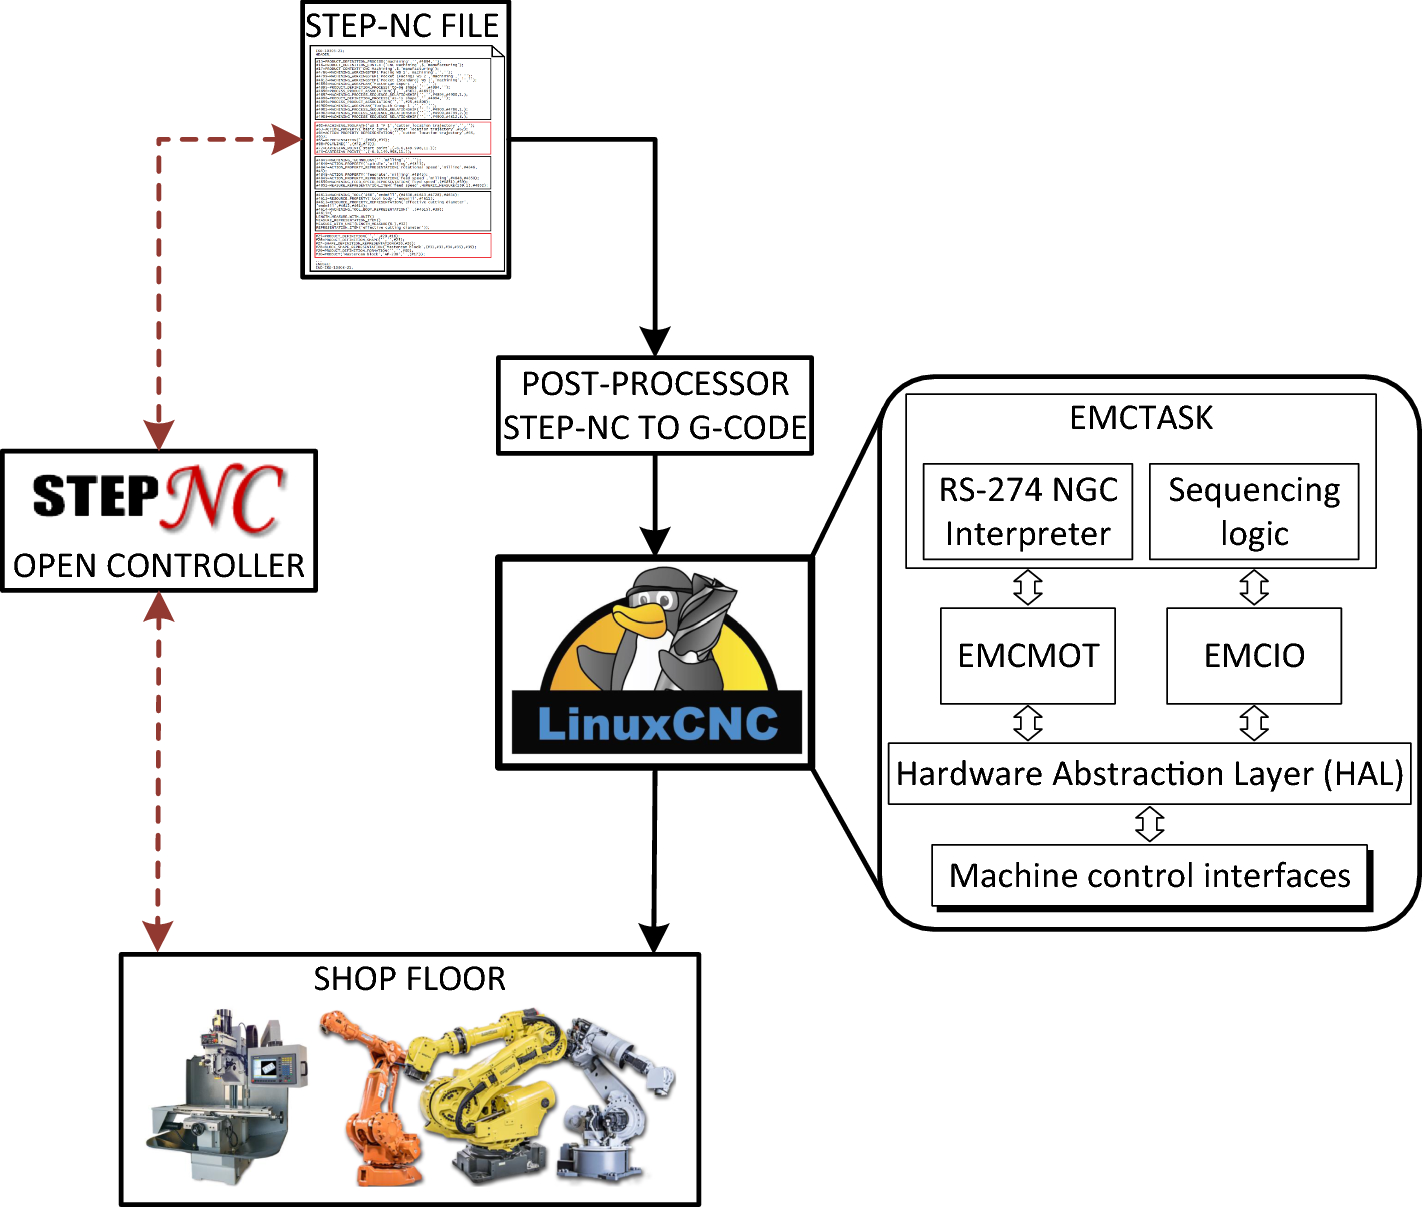 STEP-NC-based machining architecture applied to industrial